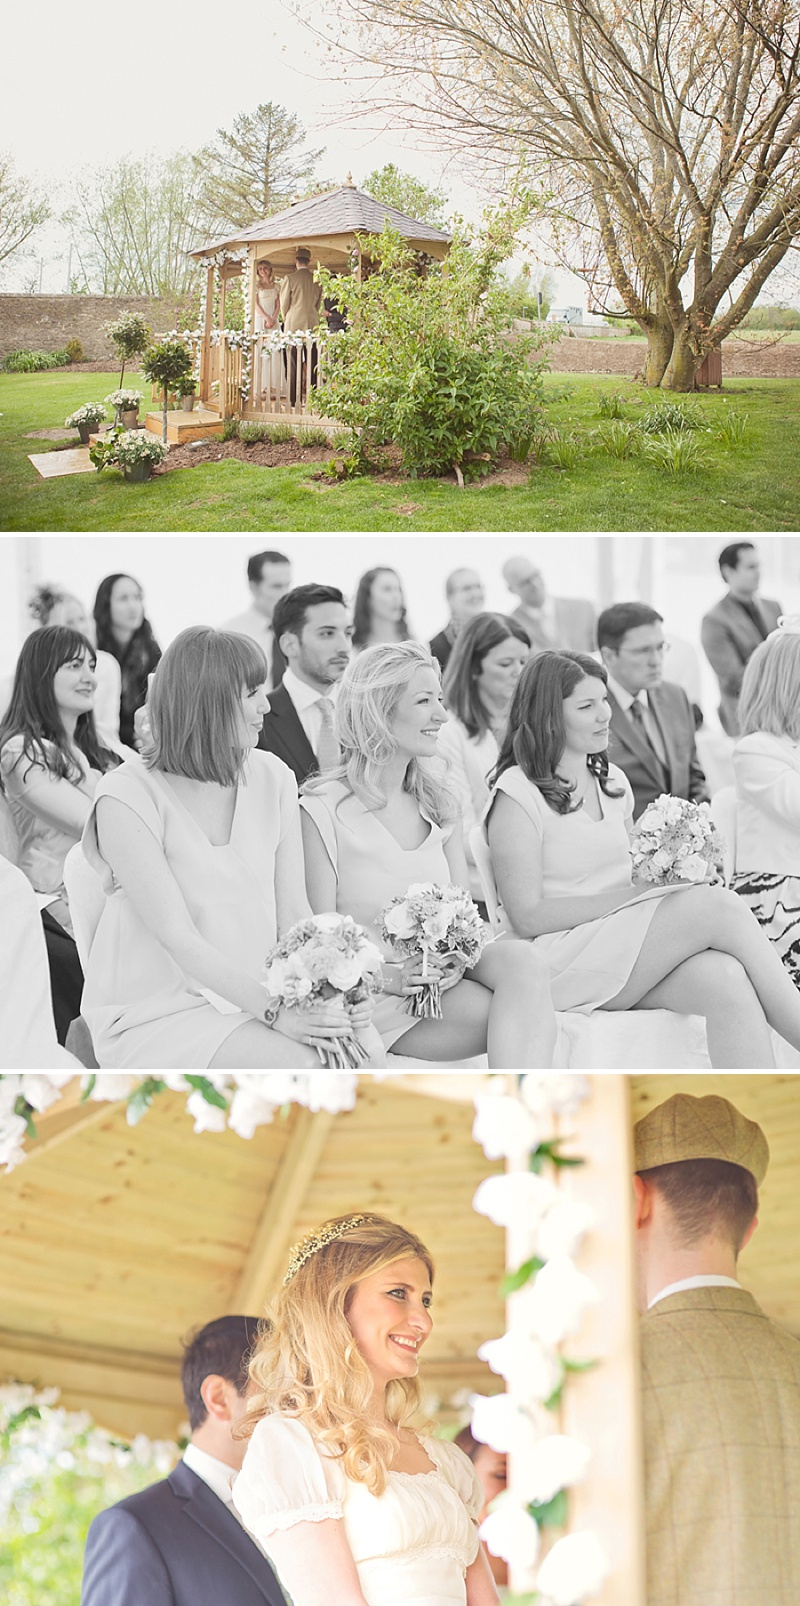 A Countryside Fair Themed Wedding at The Trout Inn Oxfordshire, Images by Cotton Candy Photography. Bride in Vintage Gown from Charlie Brear, Groom In Tweed suit and flat cap_0009